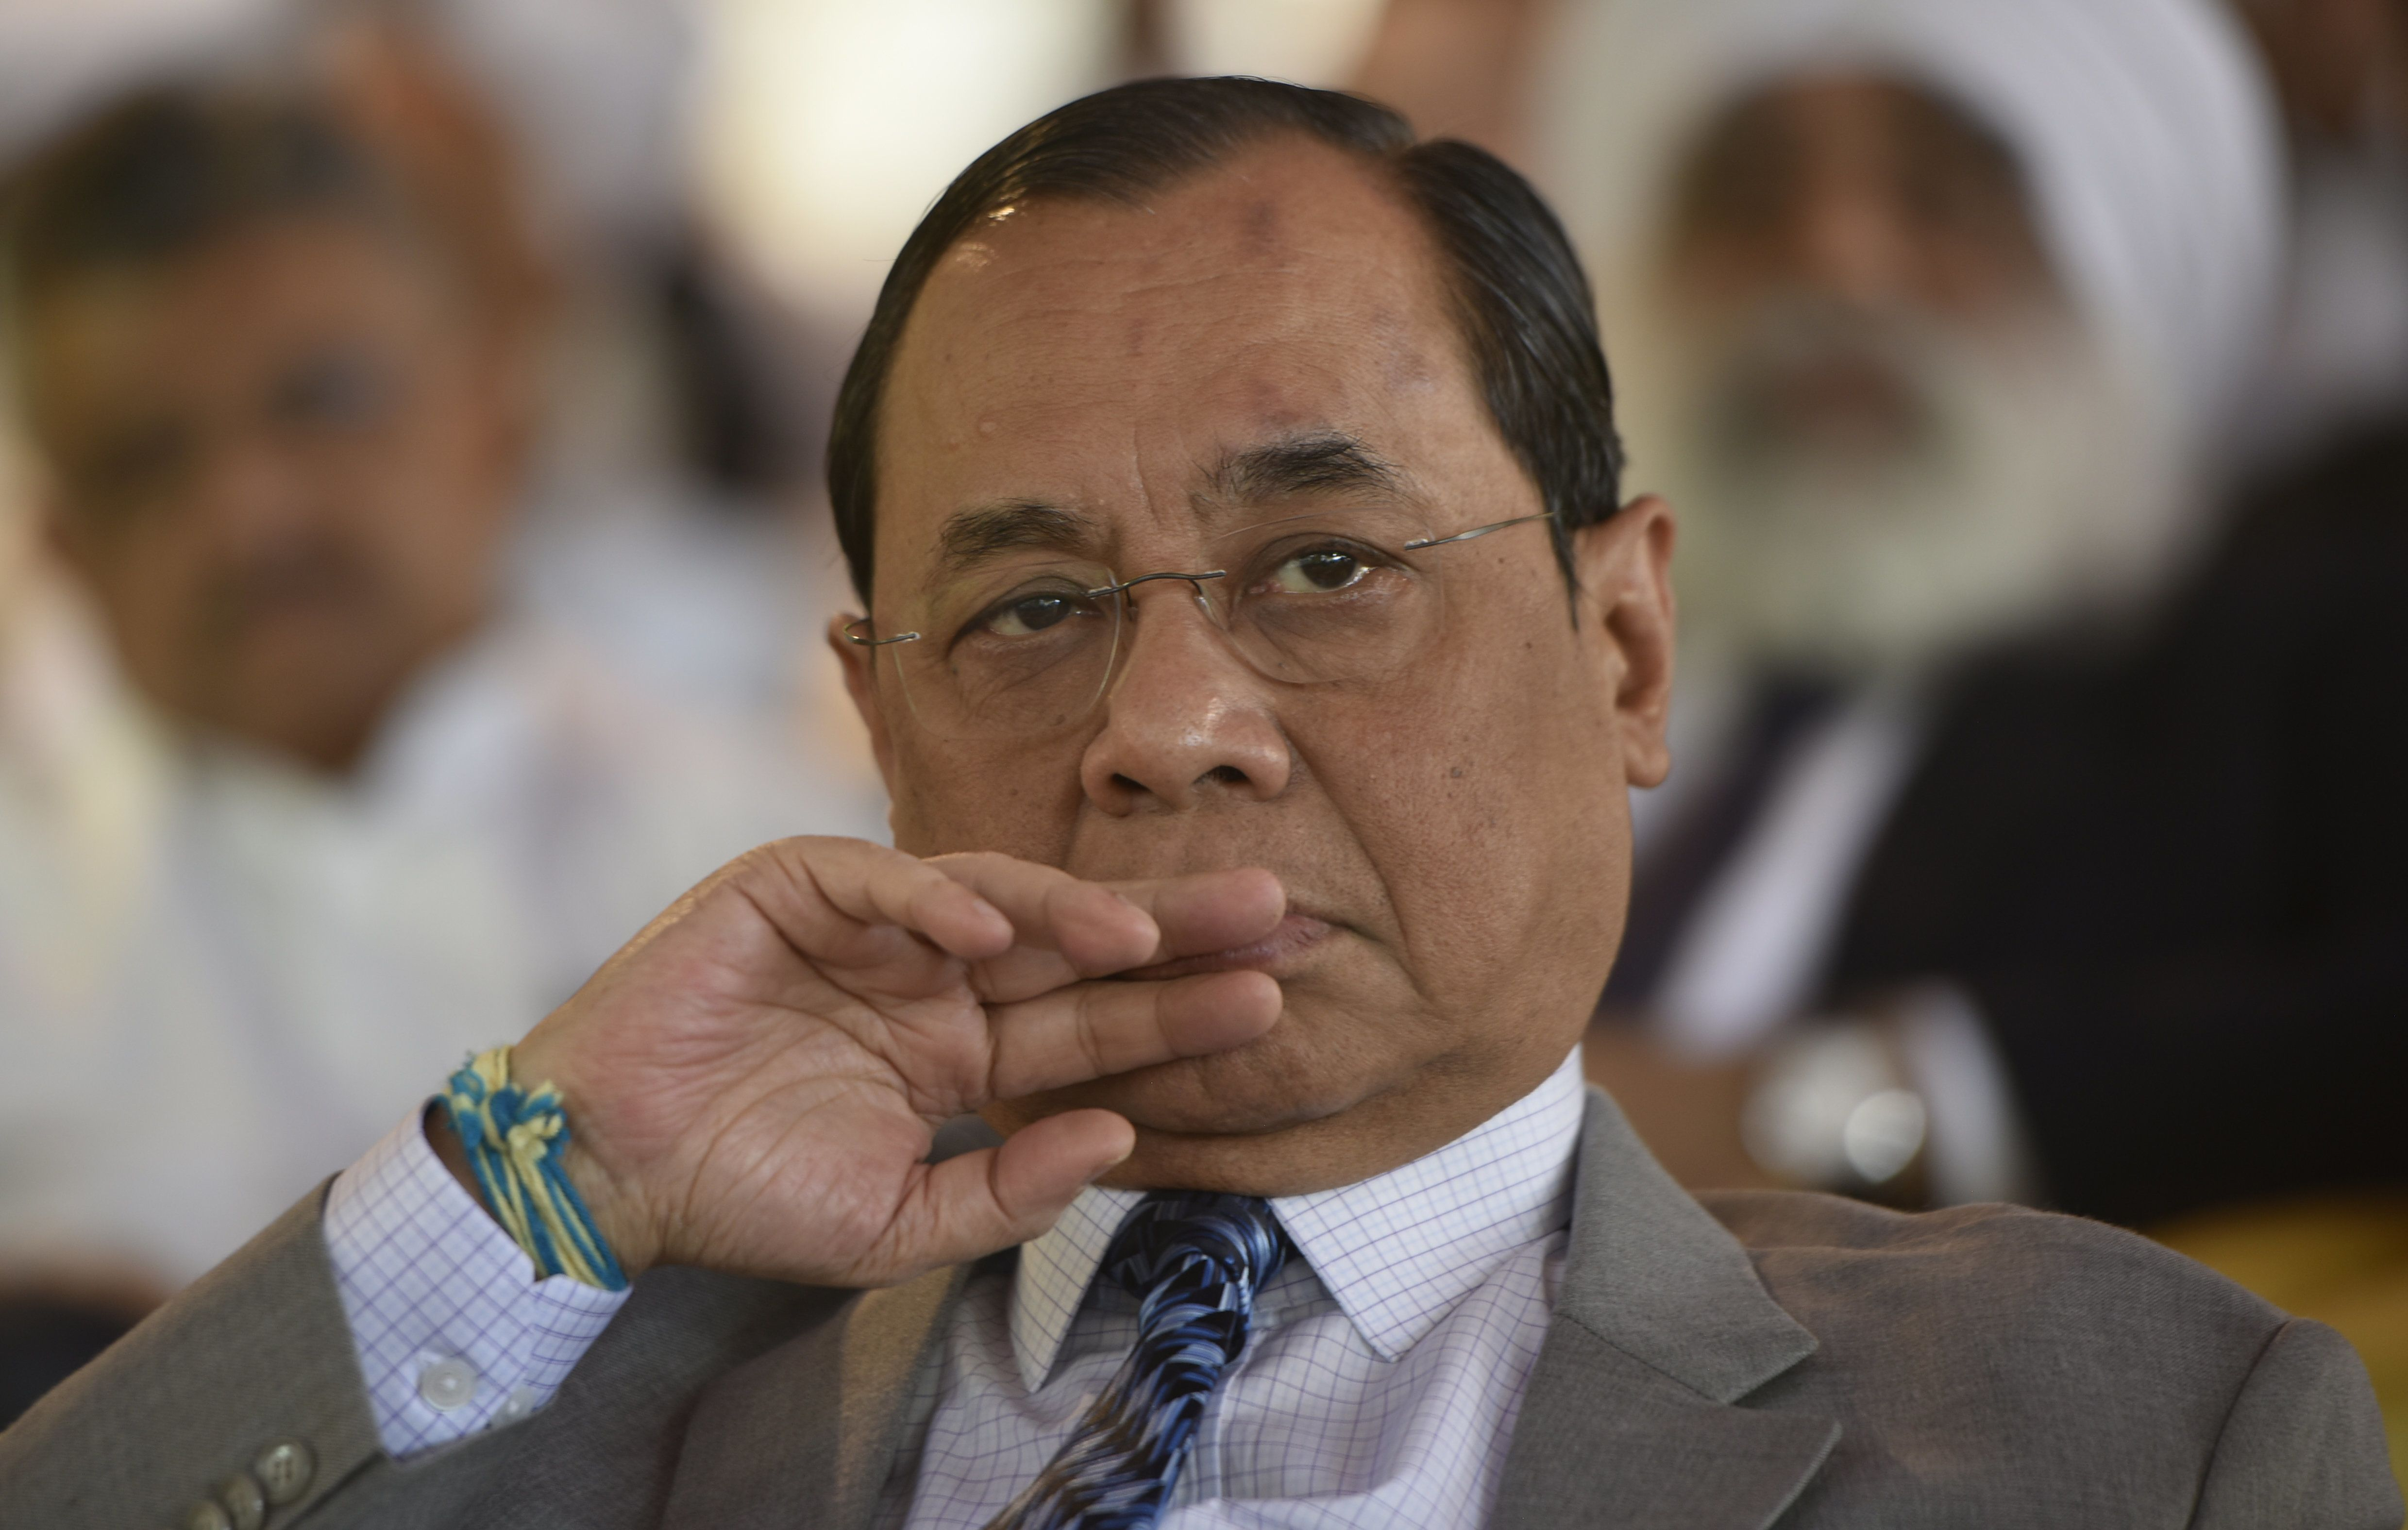 If SC's Integrity Is Threatened, It Isn't From Allegations Against CJI